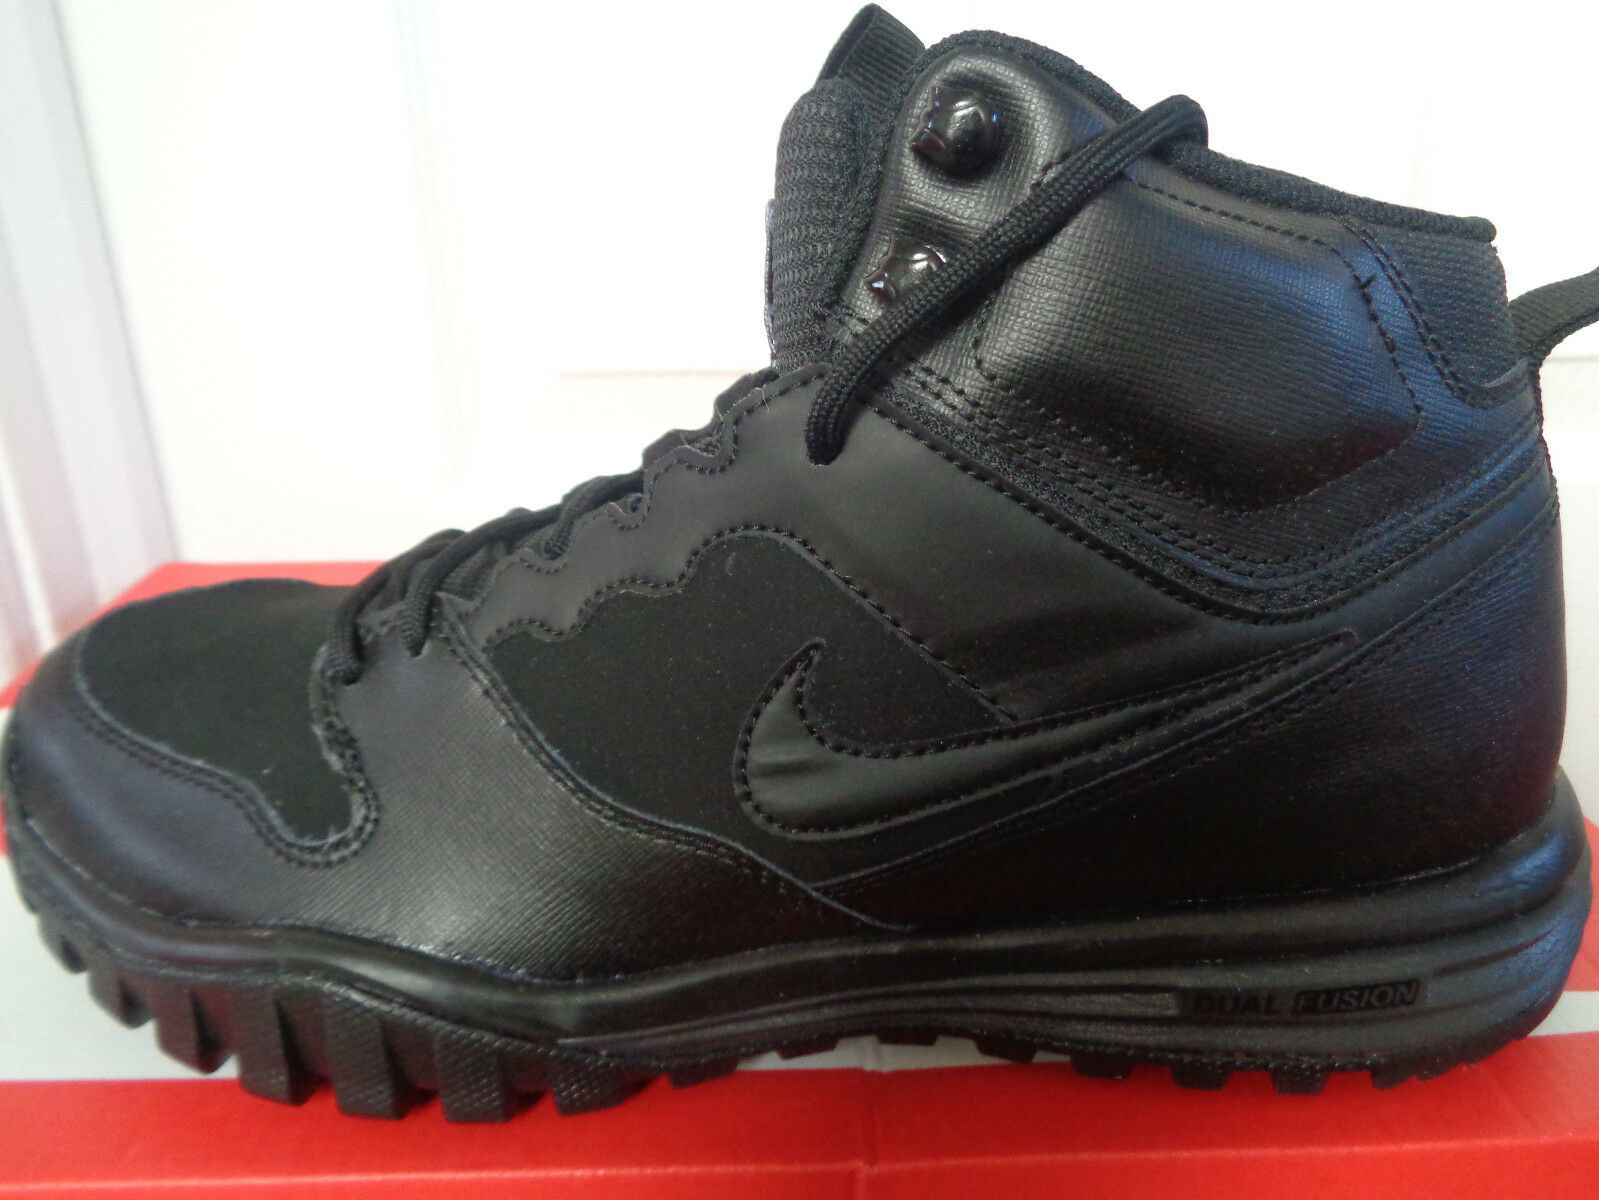 Nike Dual Fusion Hills Mid leather trainers 695784 004 uk 7.5 eu 42 us 8.5 NEW